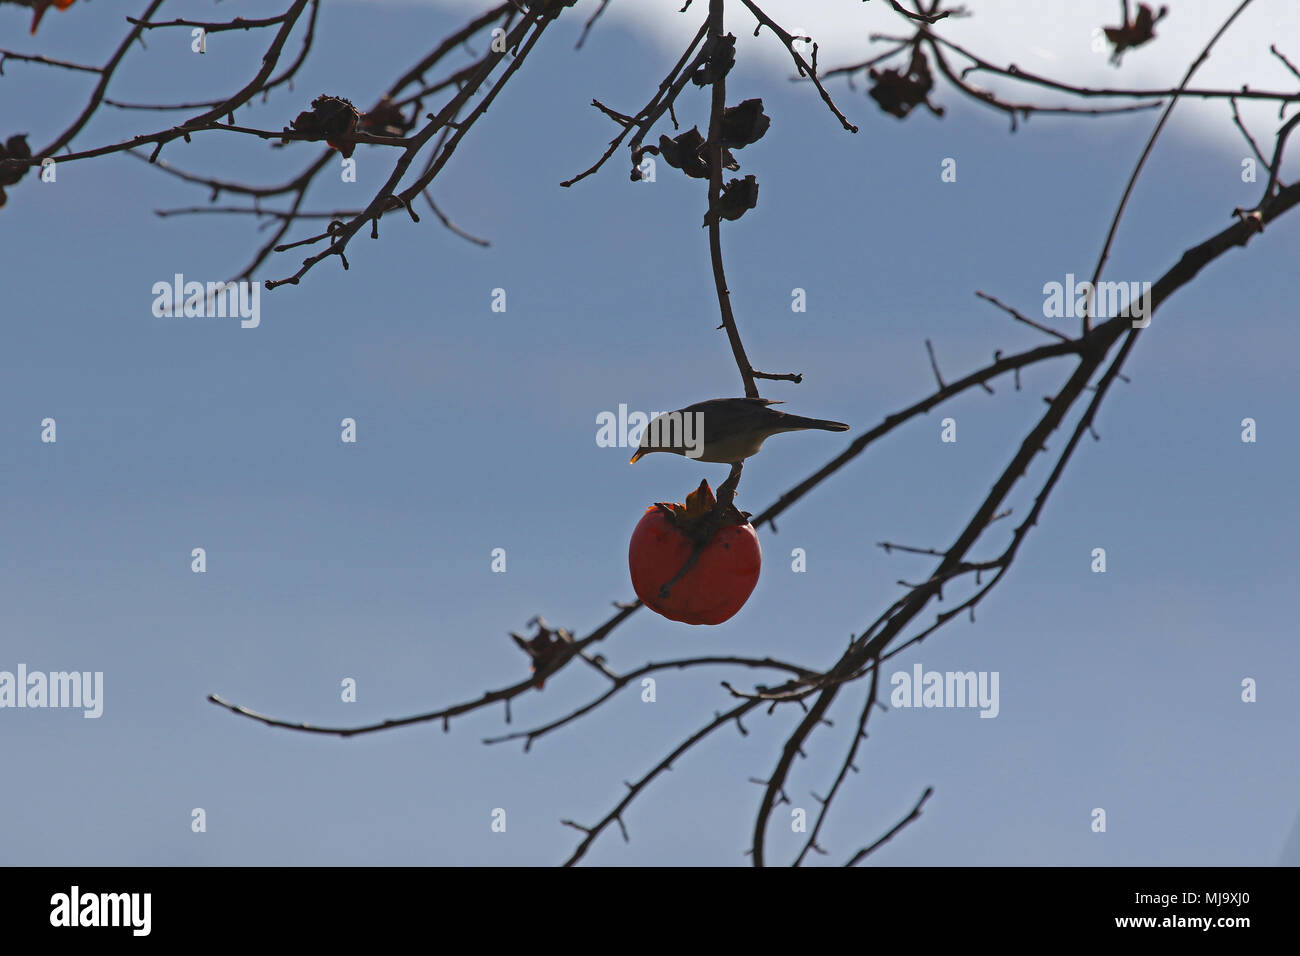 blackcap in silhouette with the light behind Latin sylvia atricapilla feeding in a persimmon tree in Italy in winter - Stock Image